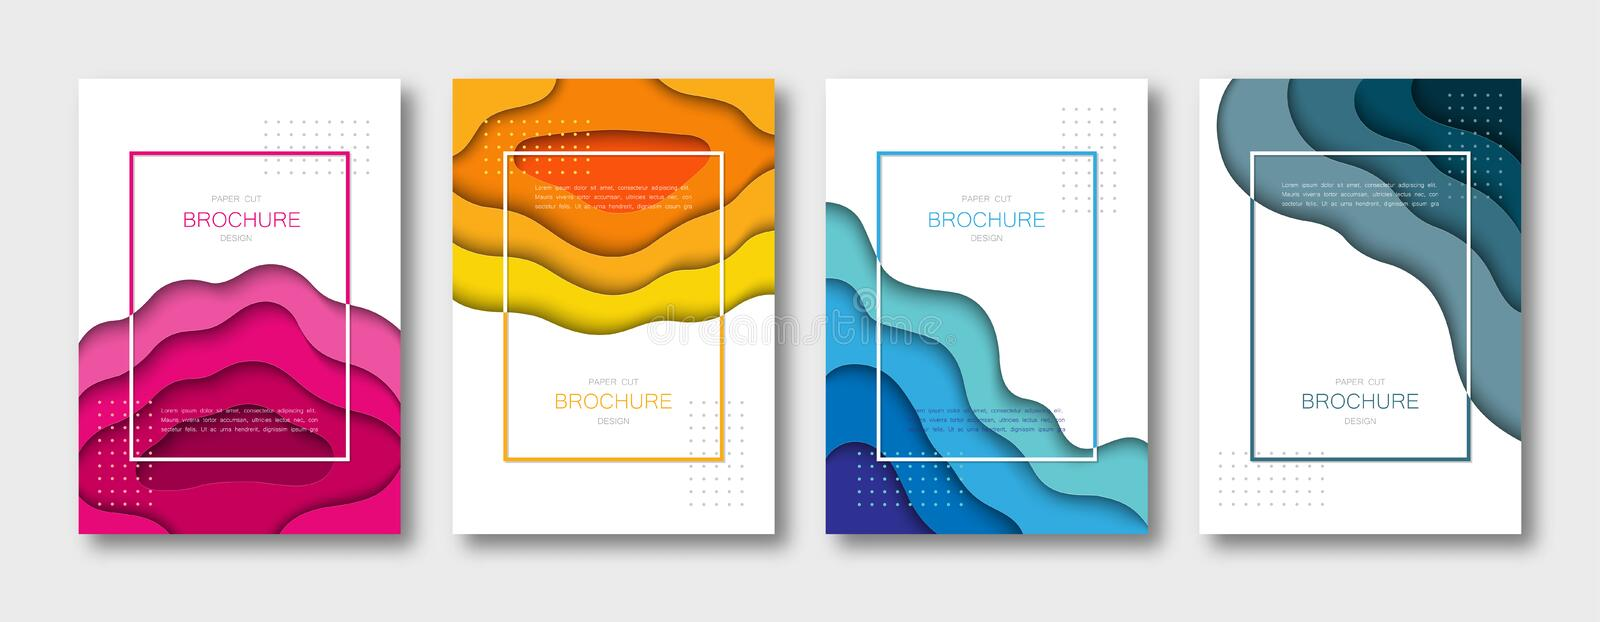 Set of brochure templates, covers, abstract 3d backgrounds with paper cut shapes. A4 size. Vector Illustration. vector illustration